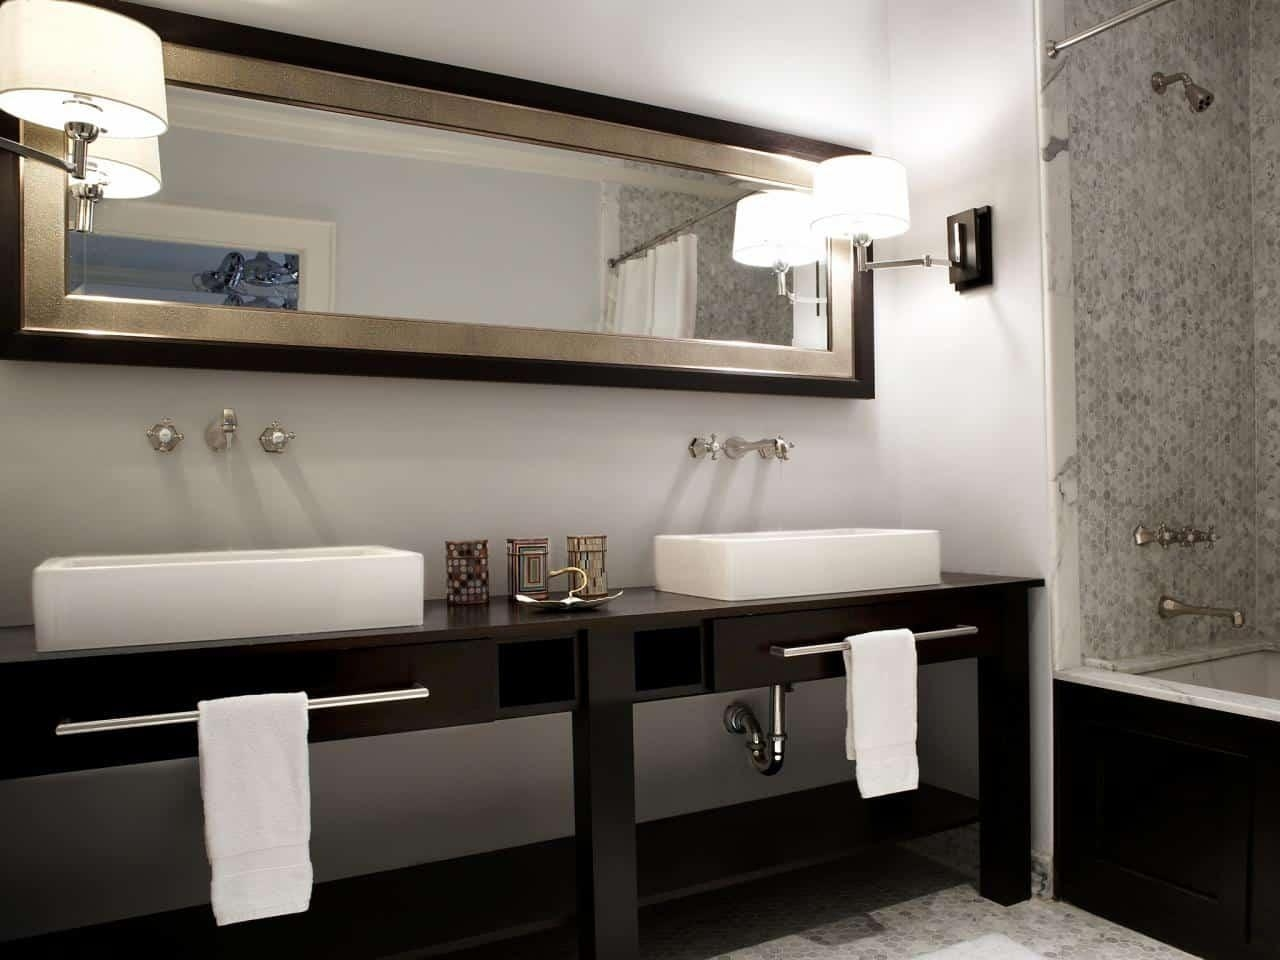 Double Vanity Bathroom Mirrors Home And Design Gallery Within How In Double Vanity Bathroom Mirrors (Image 13 of 20)